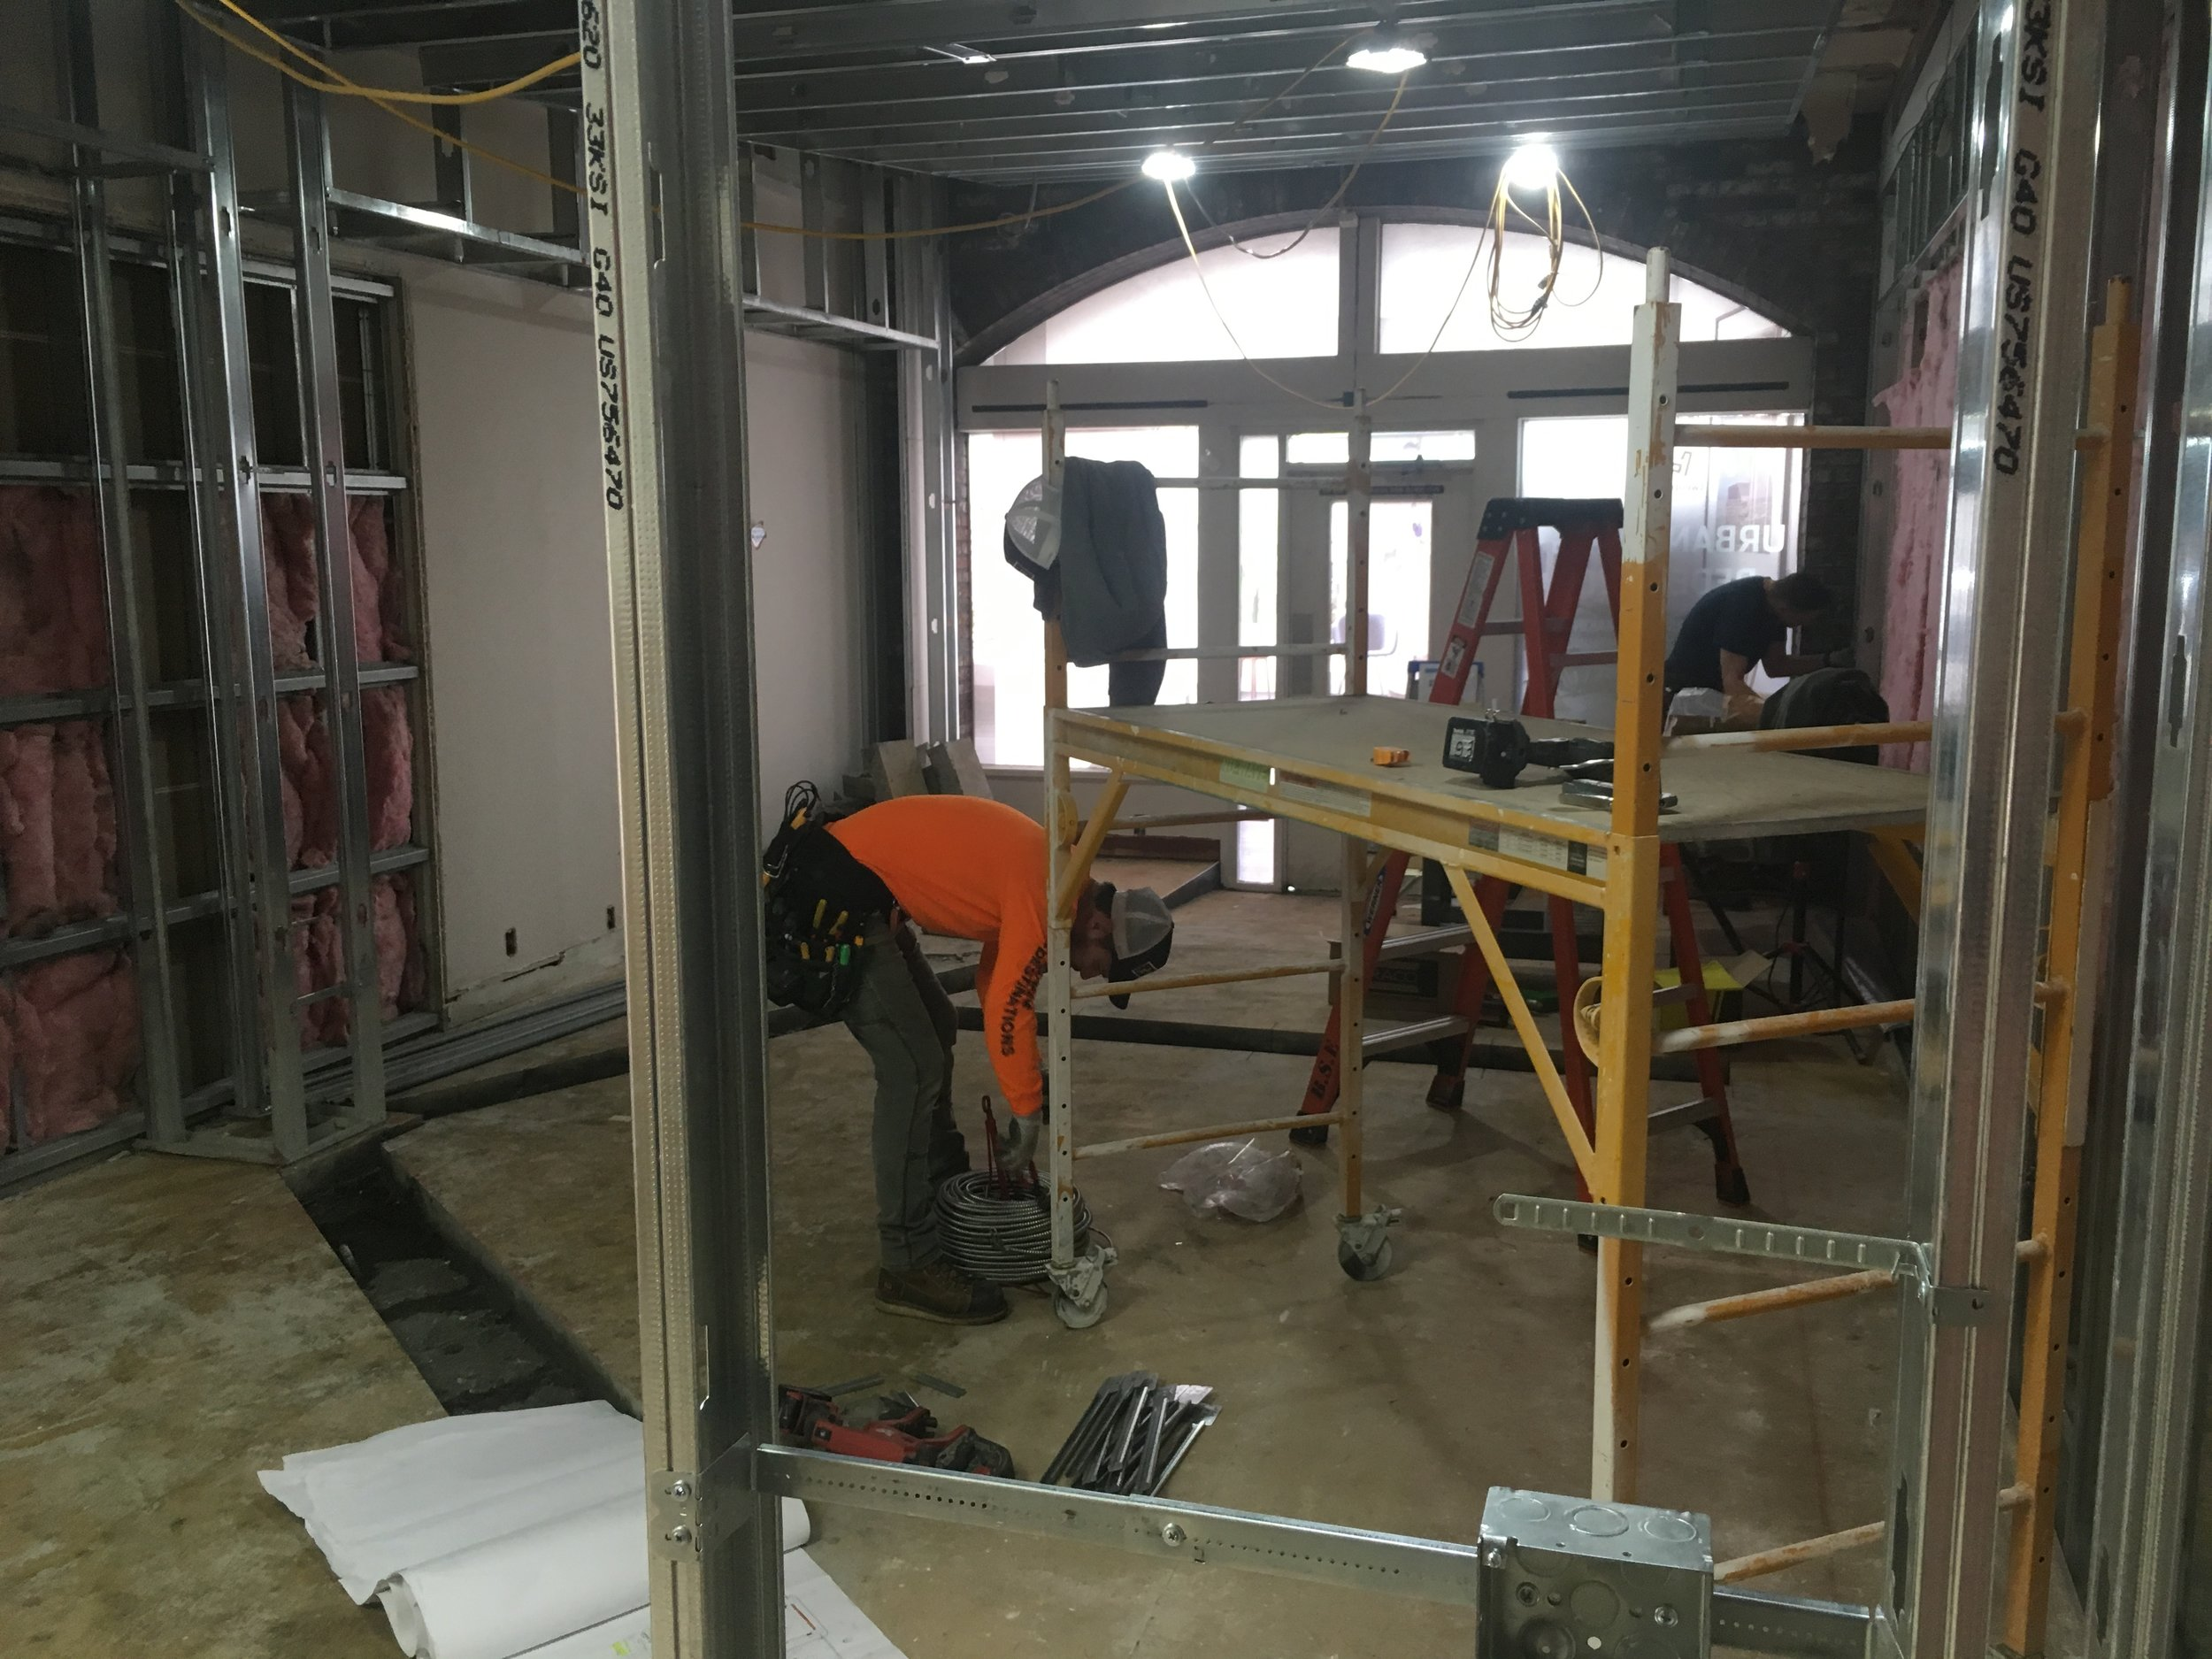 Workers are busy at Eyes on Broadway…expanding, expanding! Image Courtesy: Eyes on Broadway